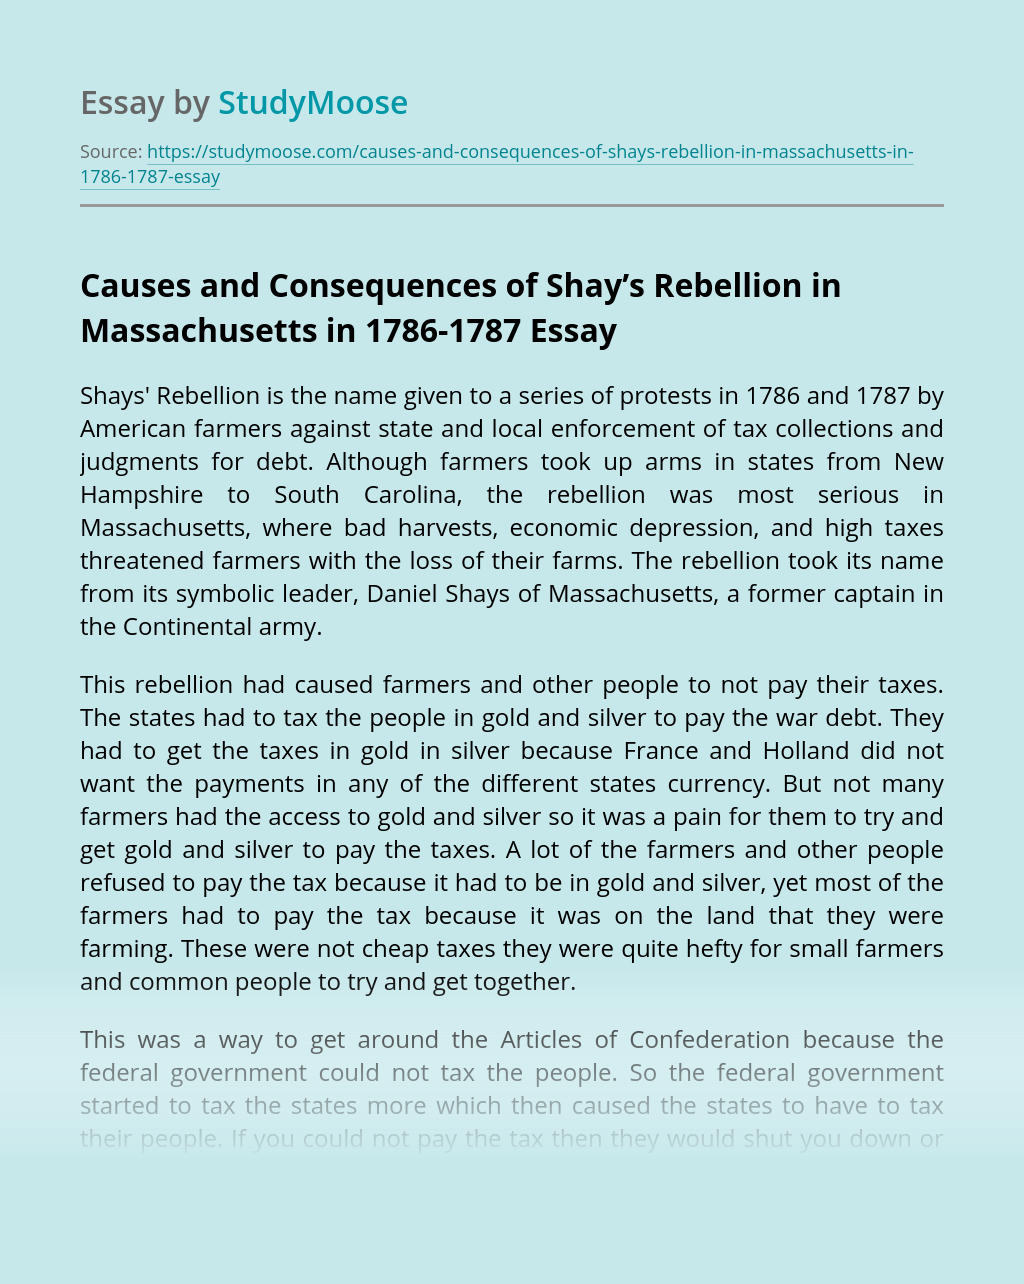 Causes and Consequences of Shay's Rebellion in Massachusetts in 1786-1787